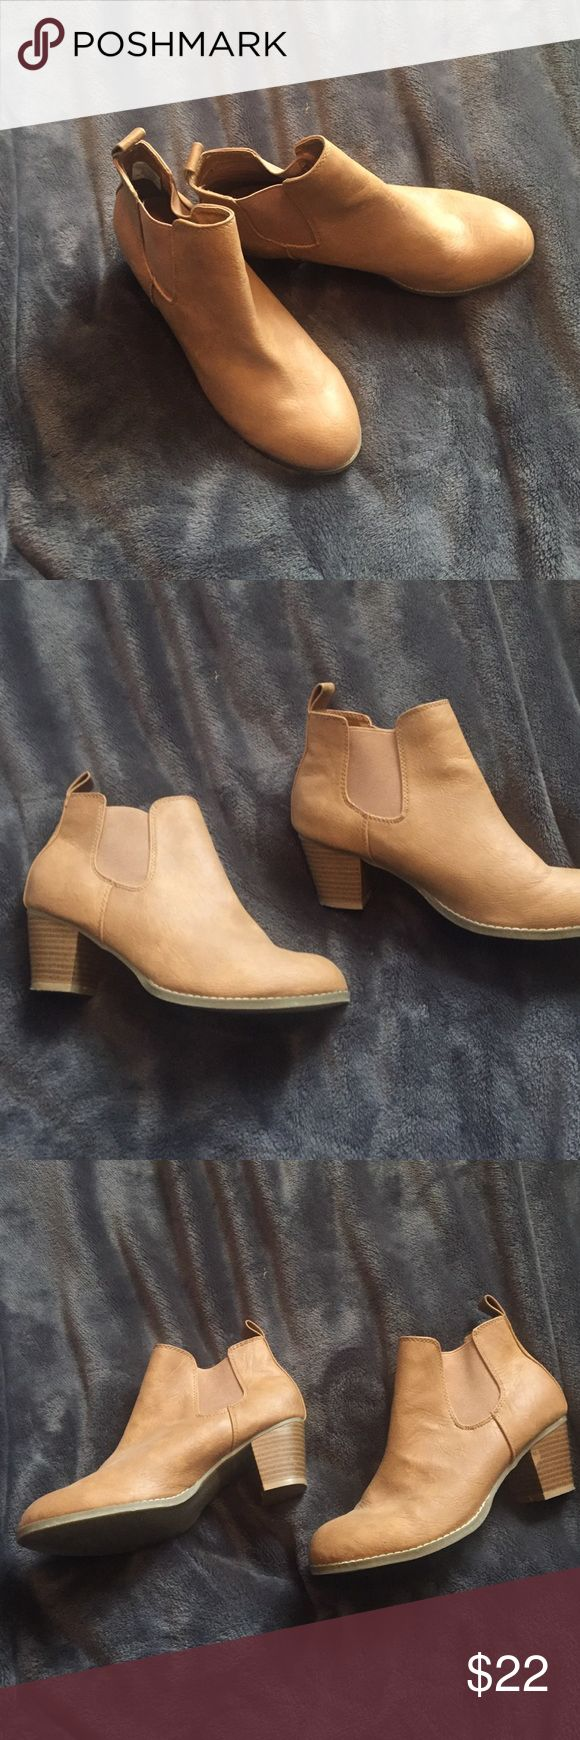 Size 7 Camel color. Booties. Old navy Camel color bootie in size 7. Worn twice Old Navy Shoes Ankle Boots & Booties